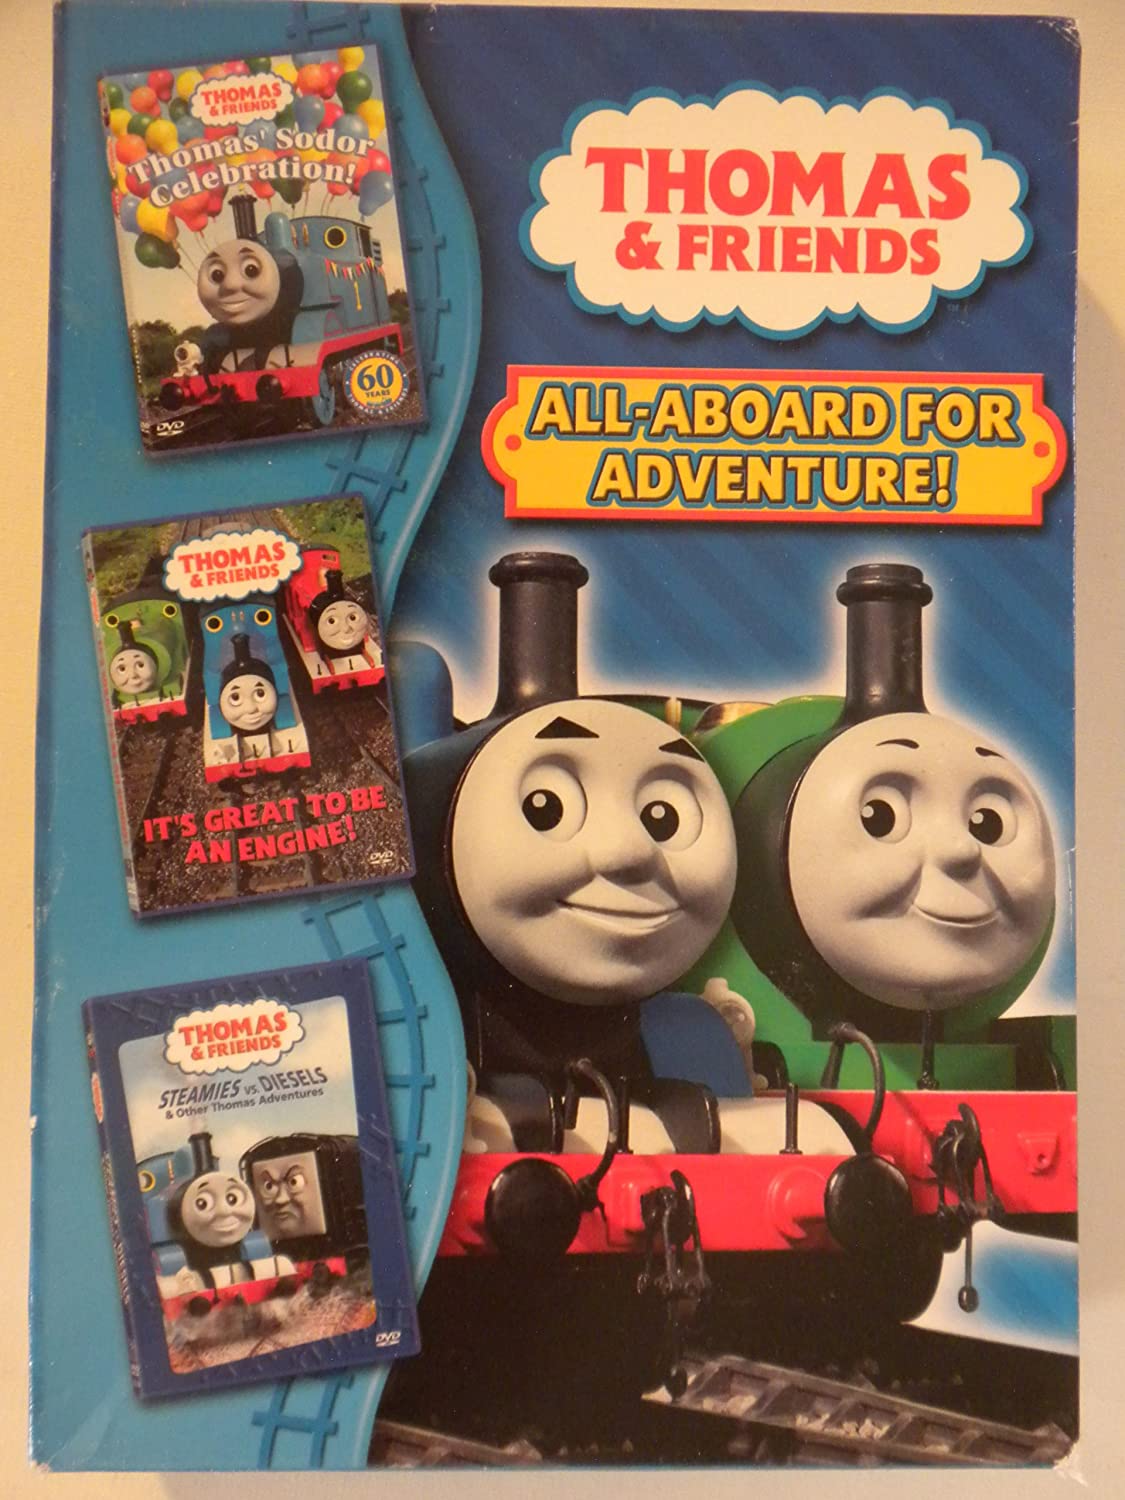 All-Aboard for Adventure!